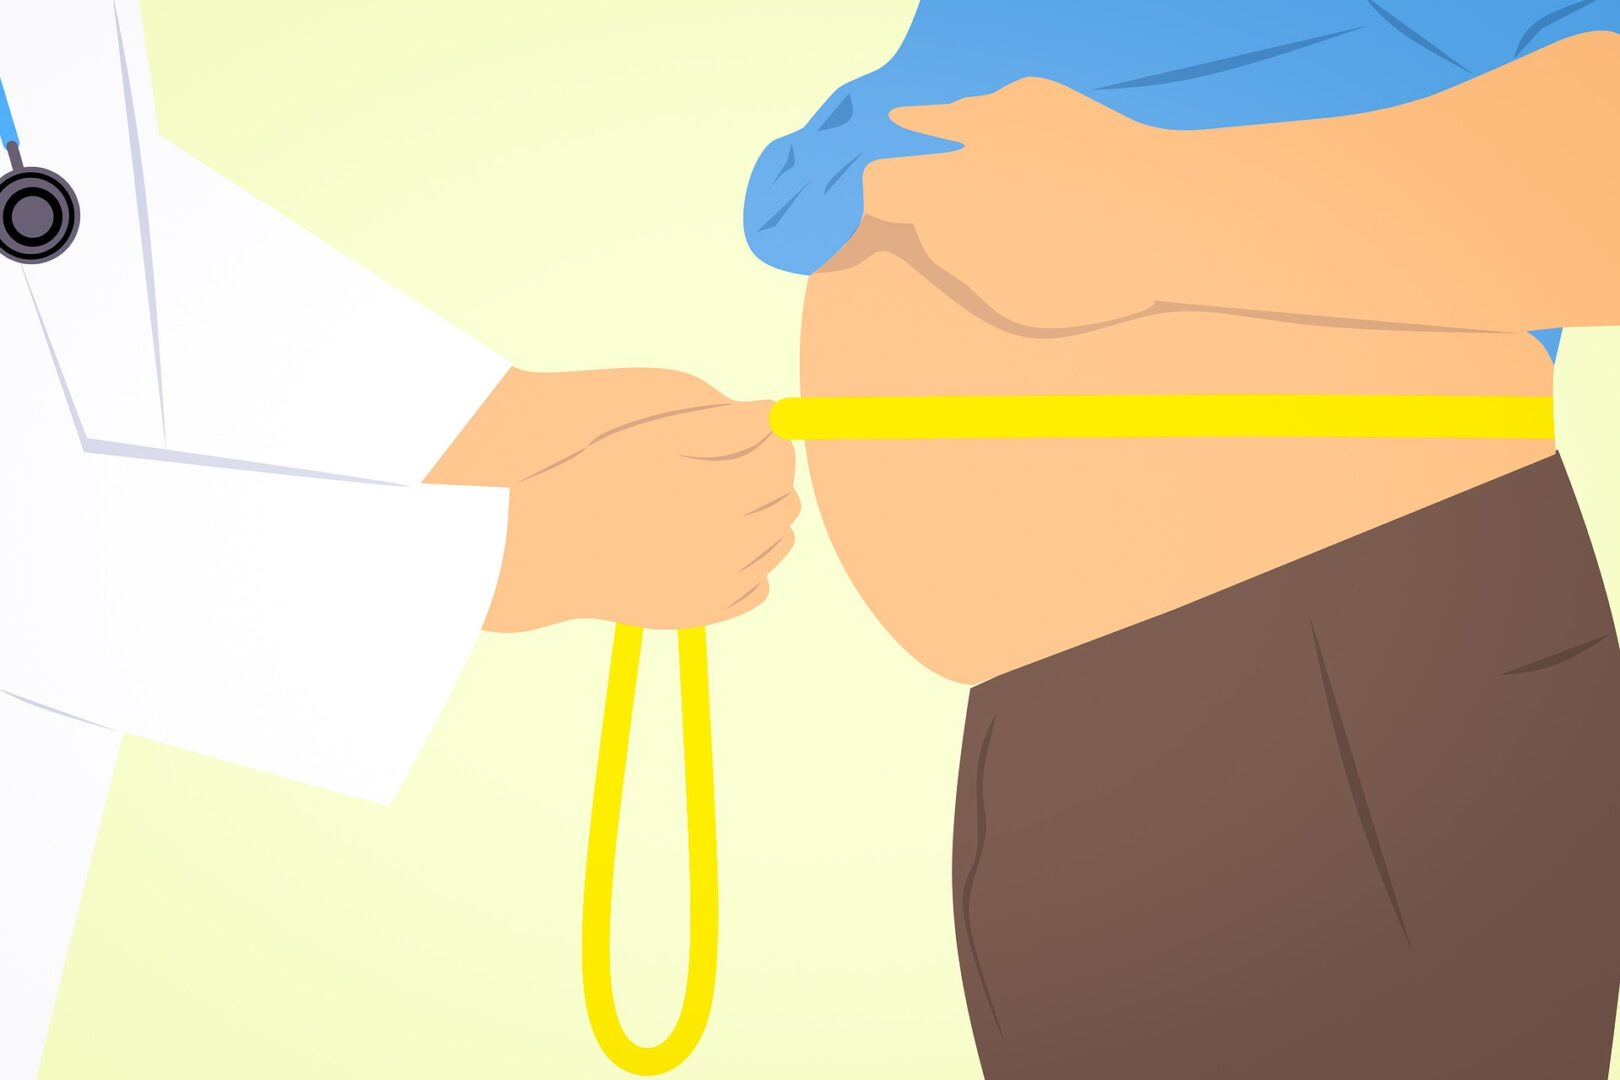 Measuring for belly fat